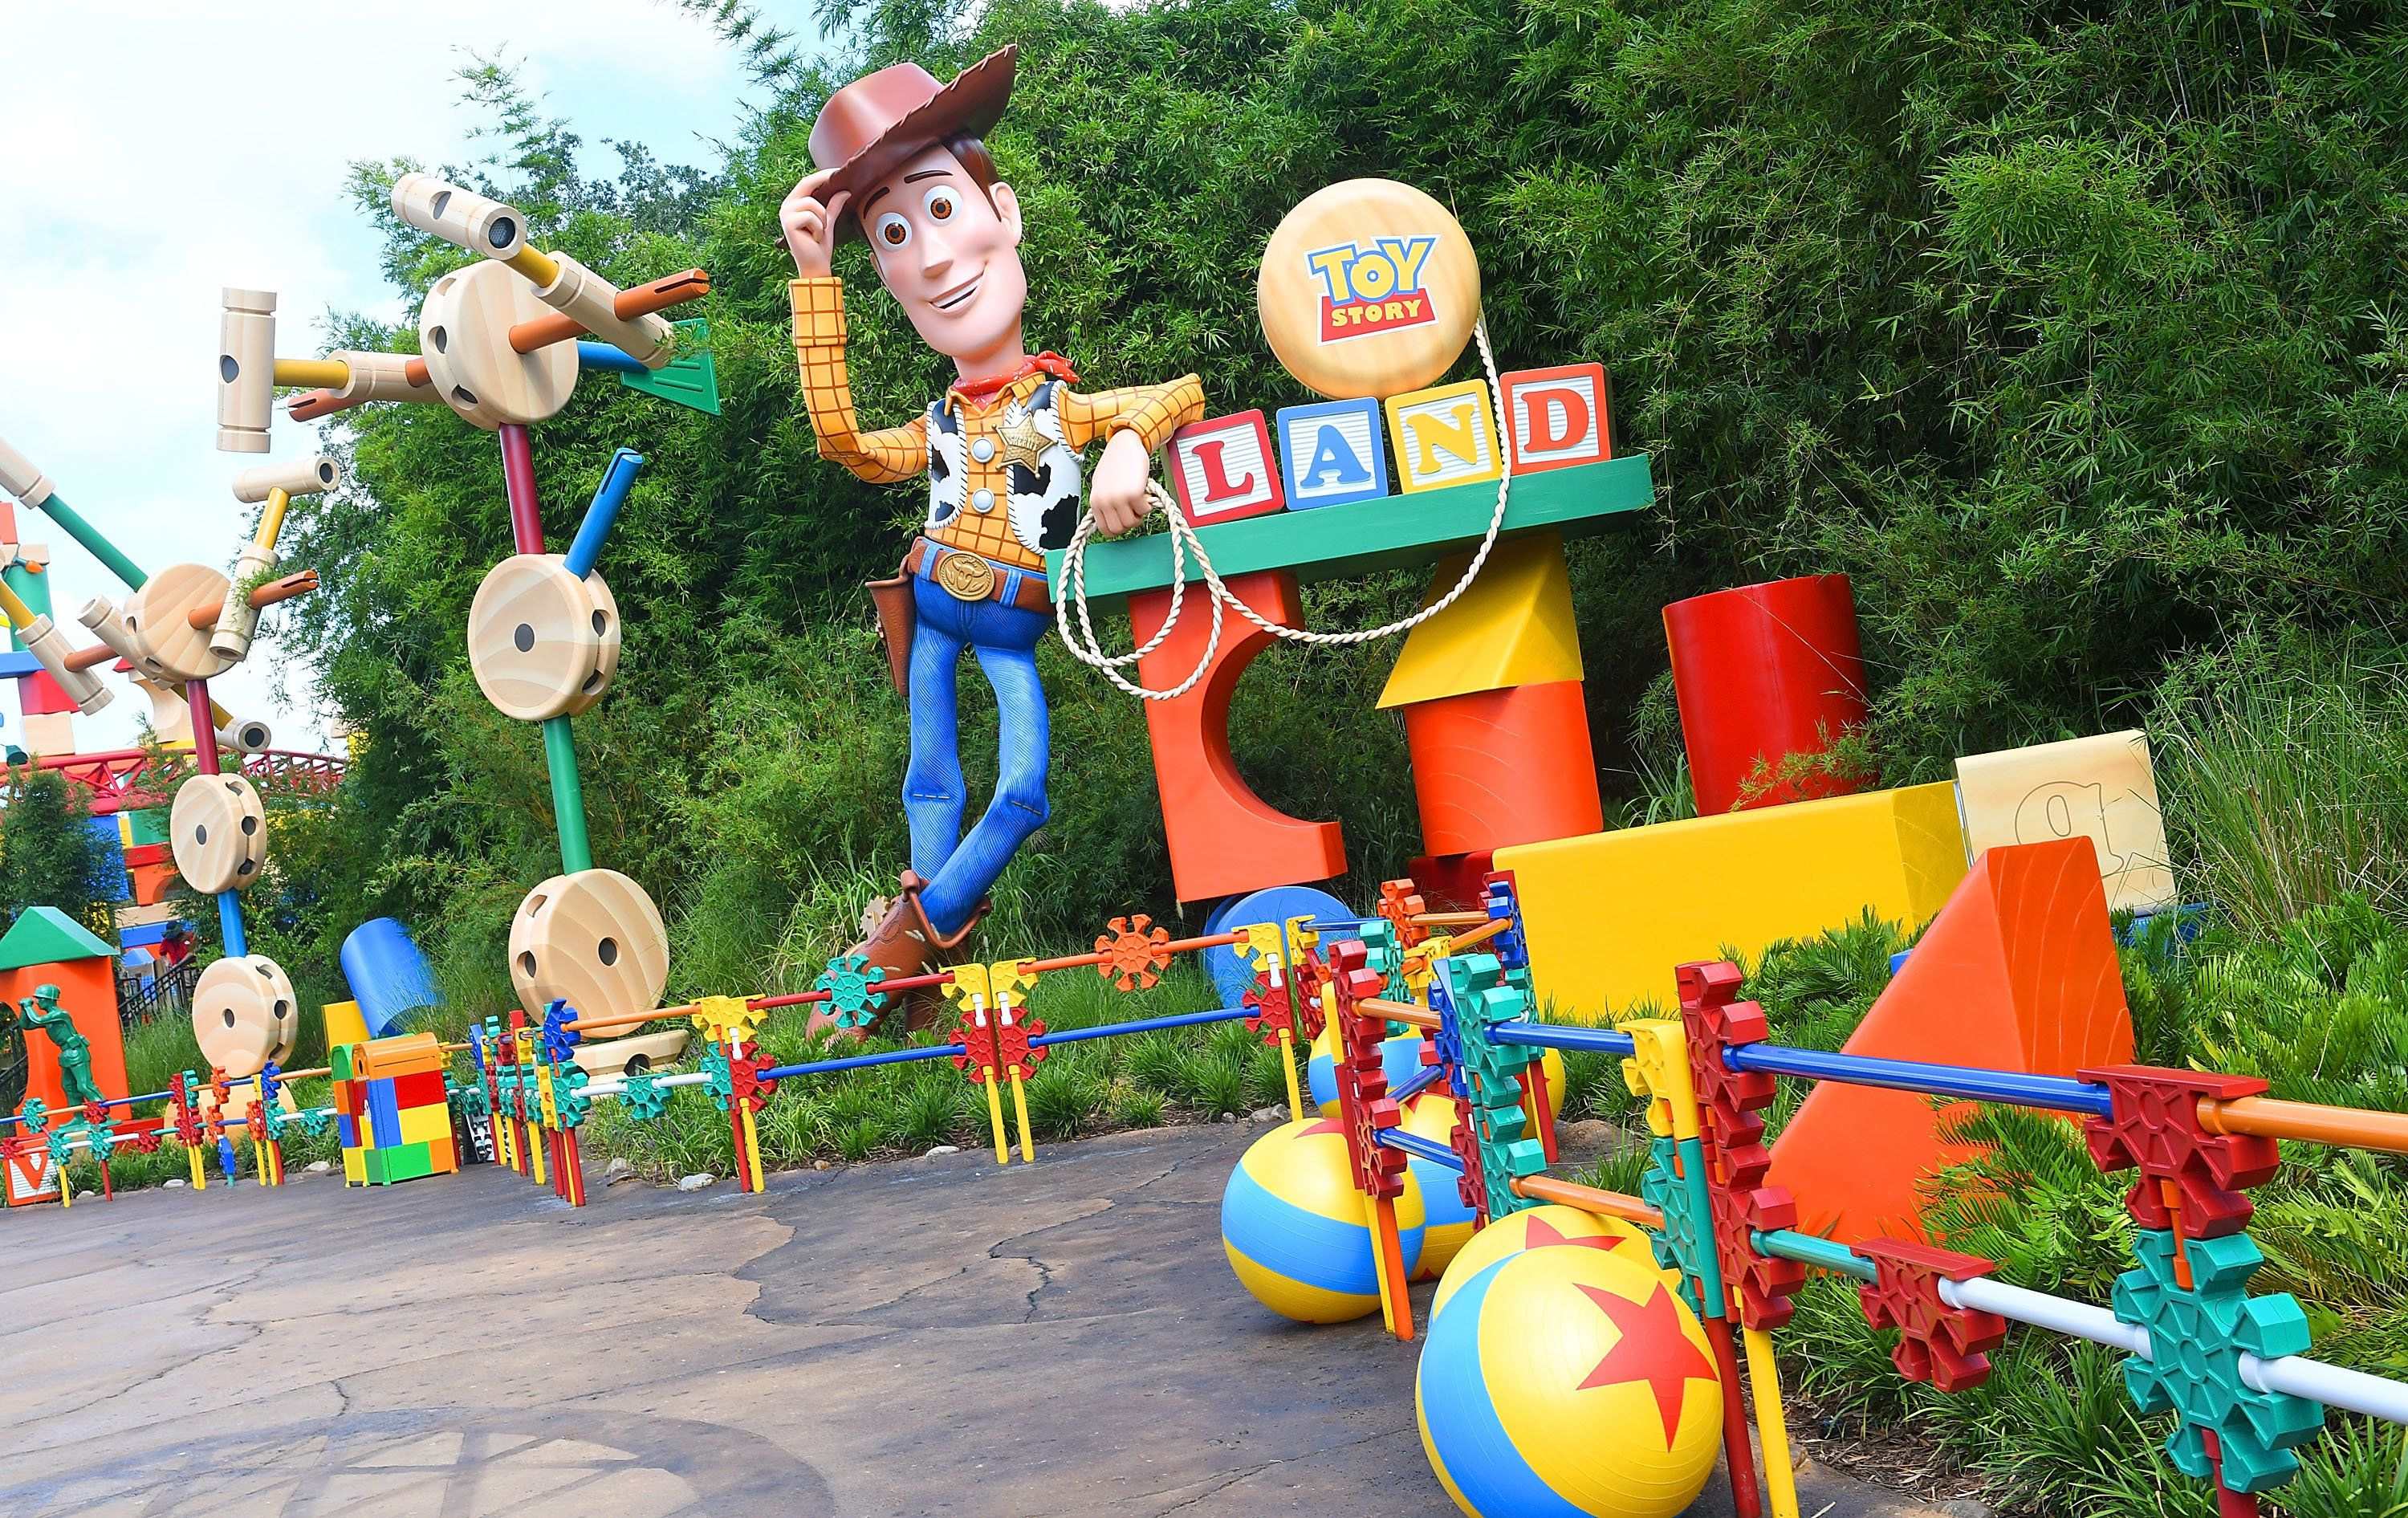 Woody welcomes fans to Toy Story Land, which is full of details from the movies. For example, the yellow ball with a blue str